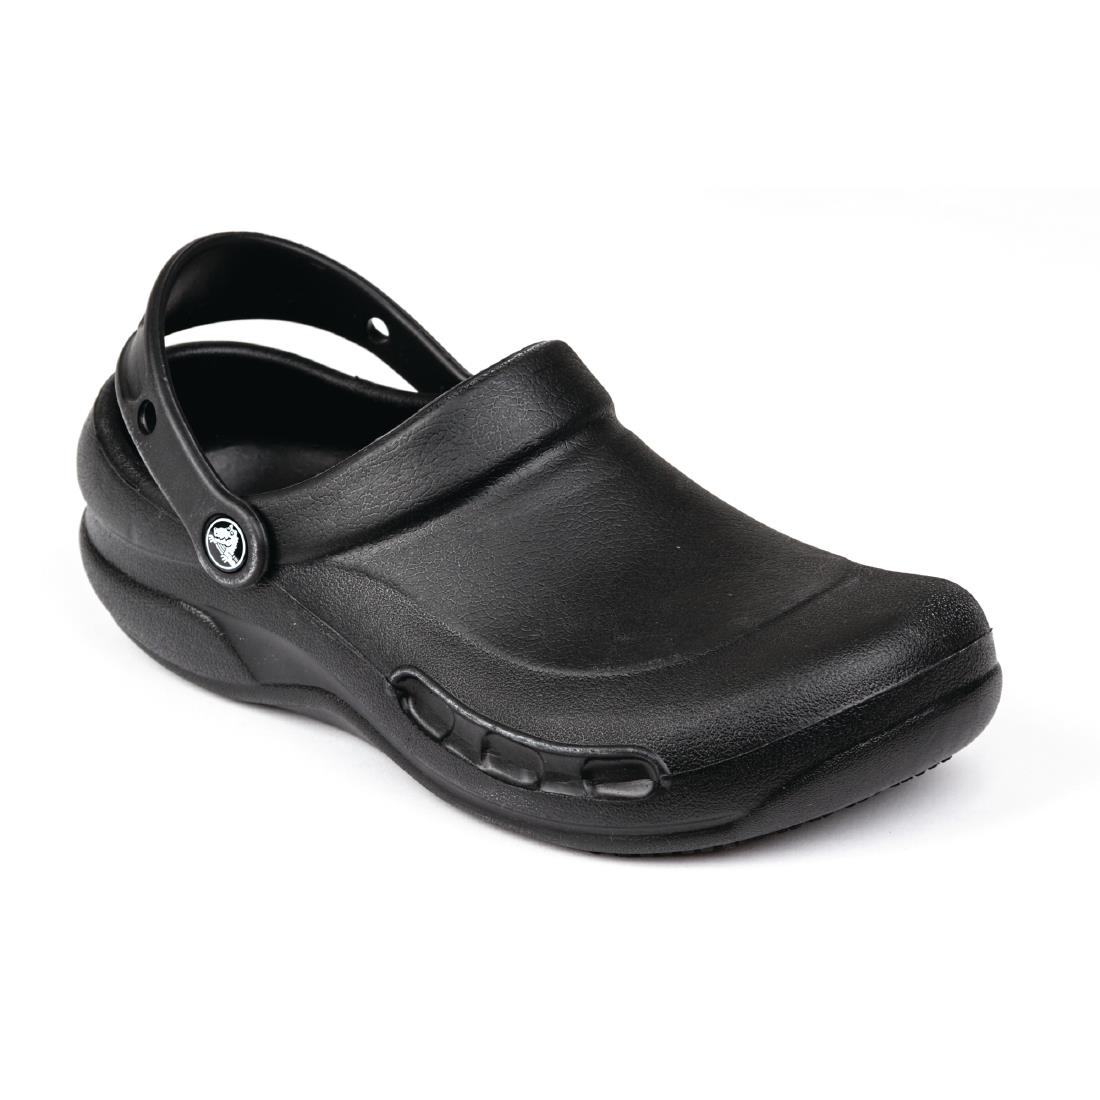 2ca2f77bf42ae5 Crocs Black Bistro Clogs - P A946 - Buy Online at Nisbets